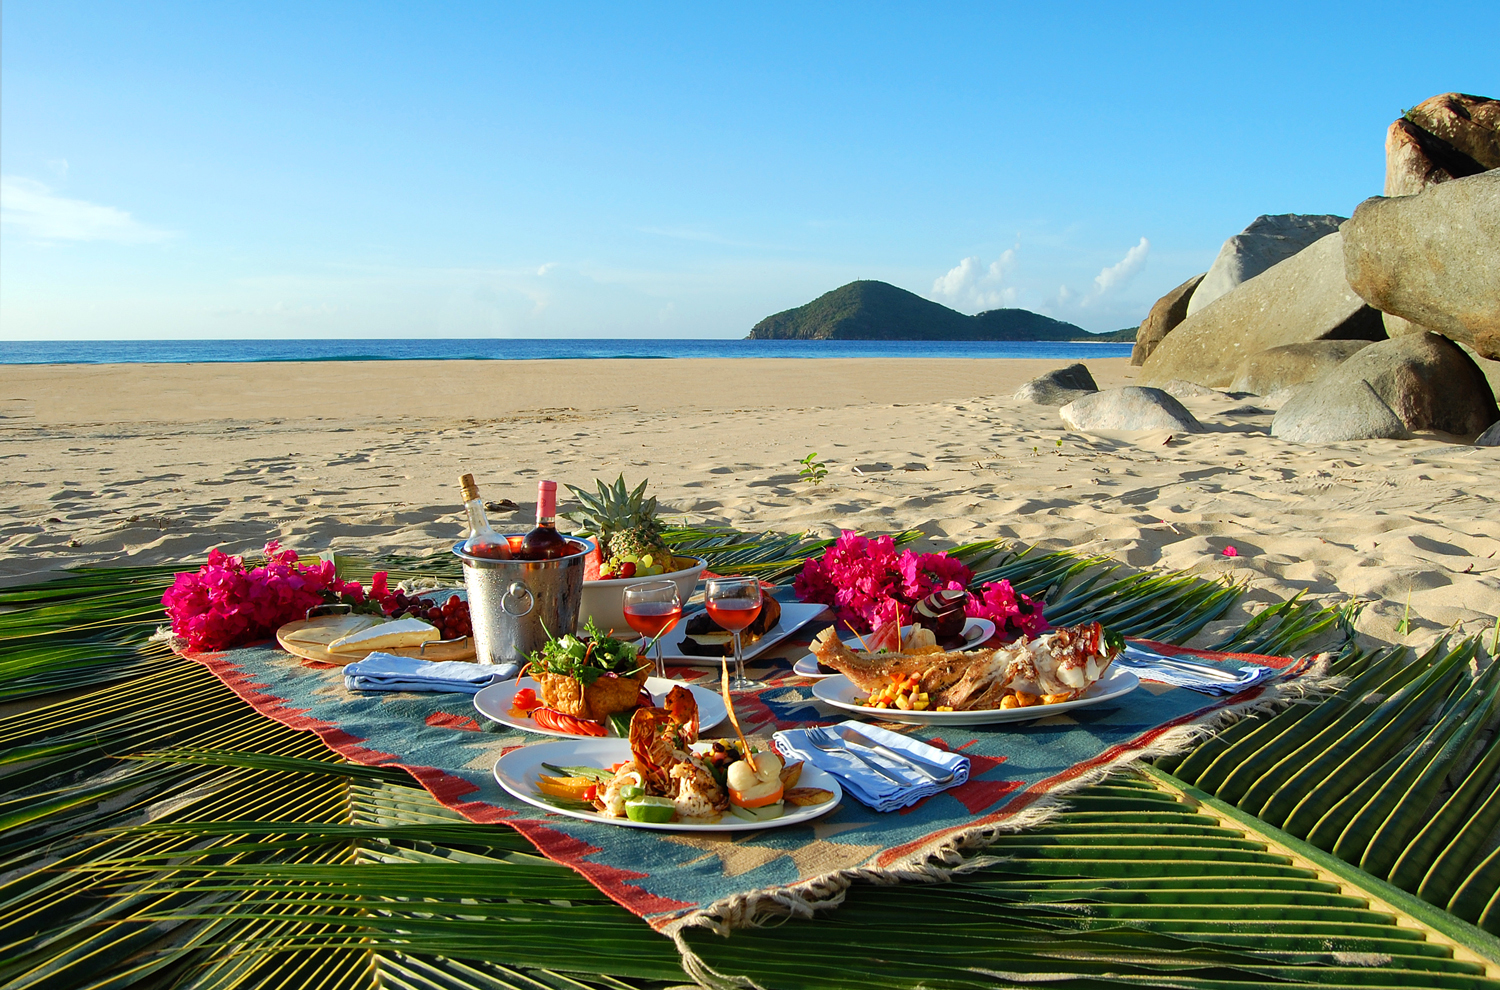 Romantic Dinner Recipes Lazy Days Picnic Caribbean Style